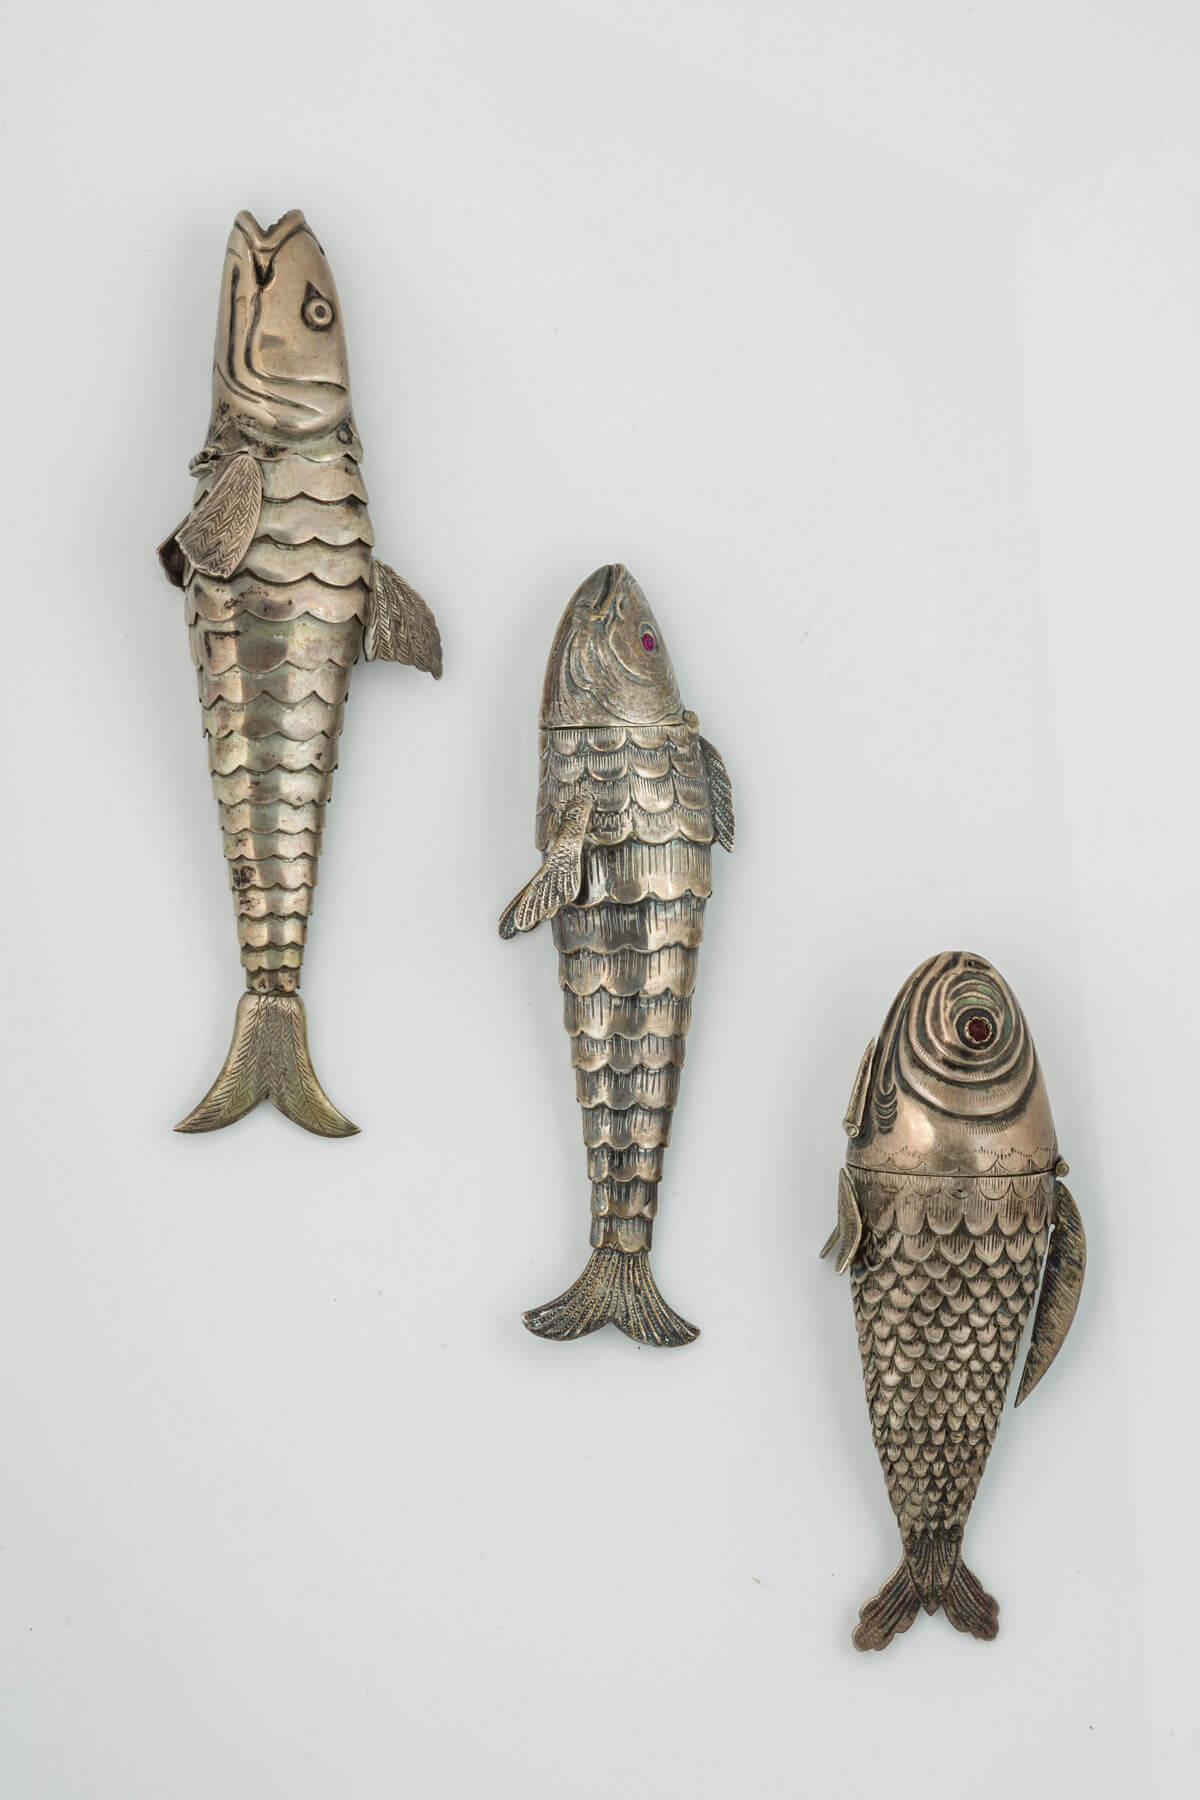 028. Three Fish-Shaped Spice Containers